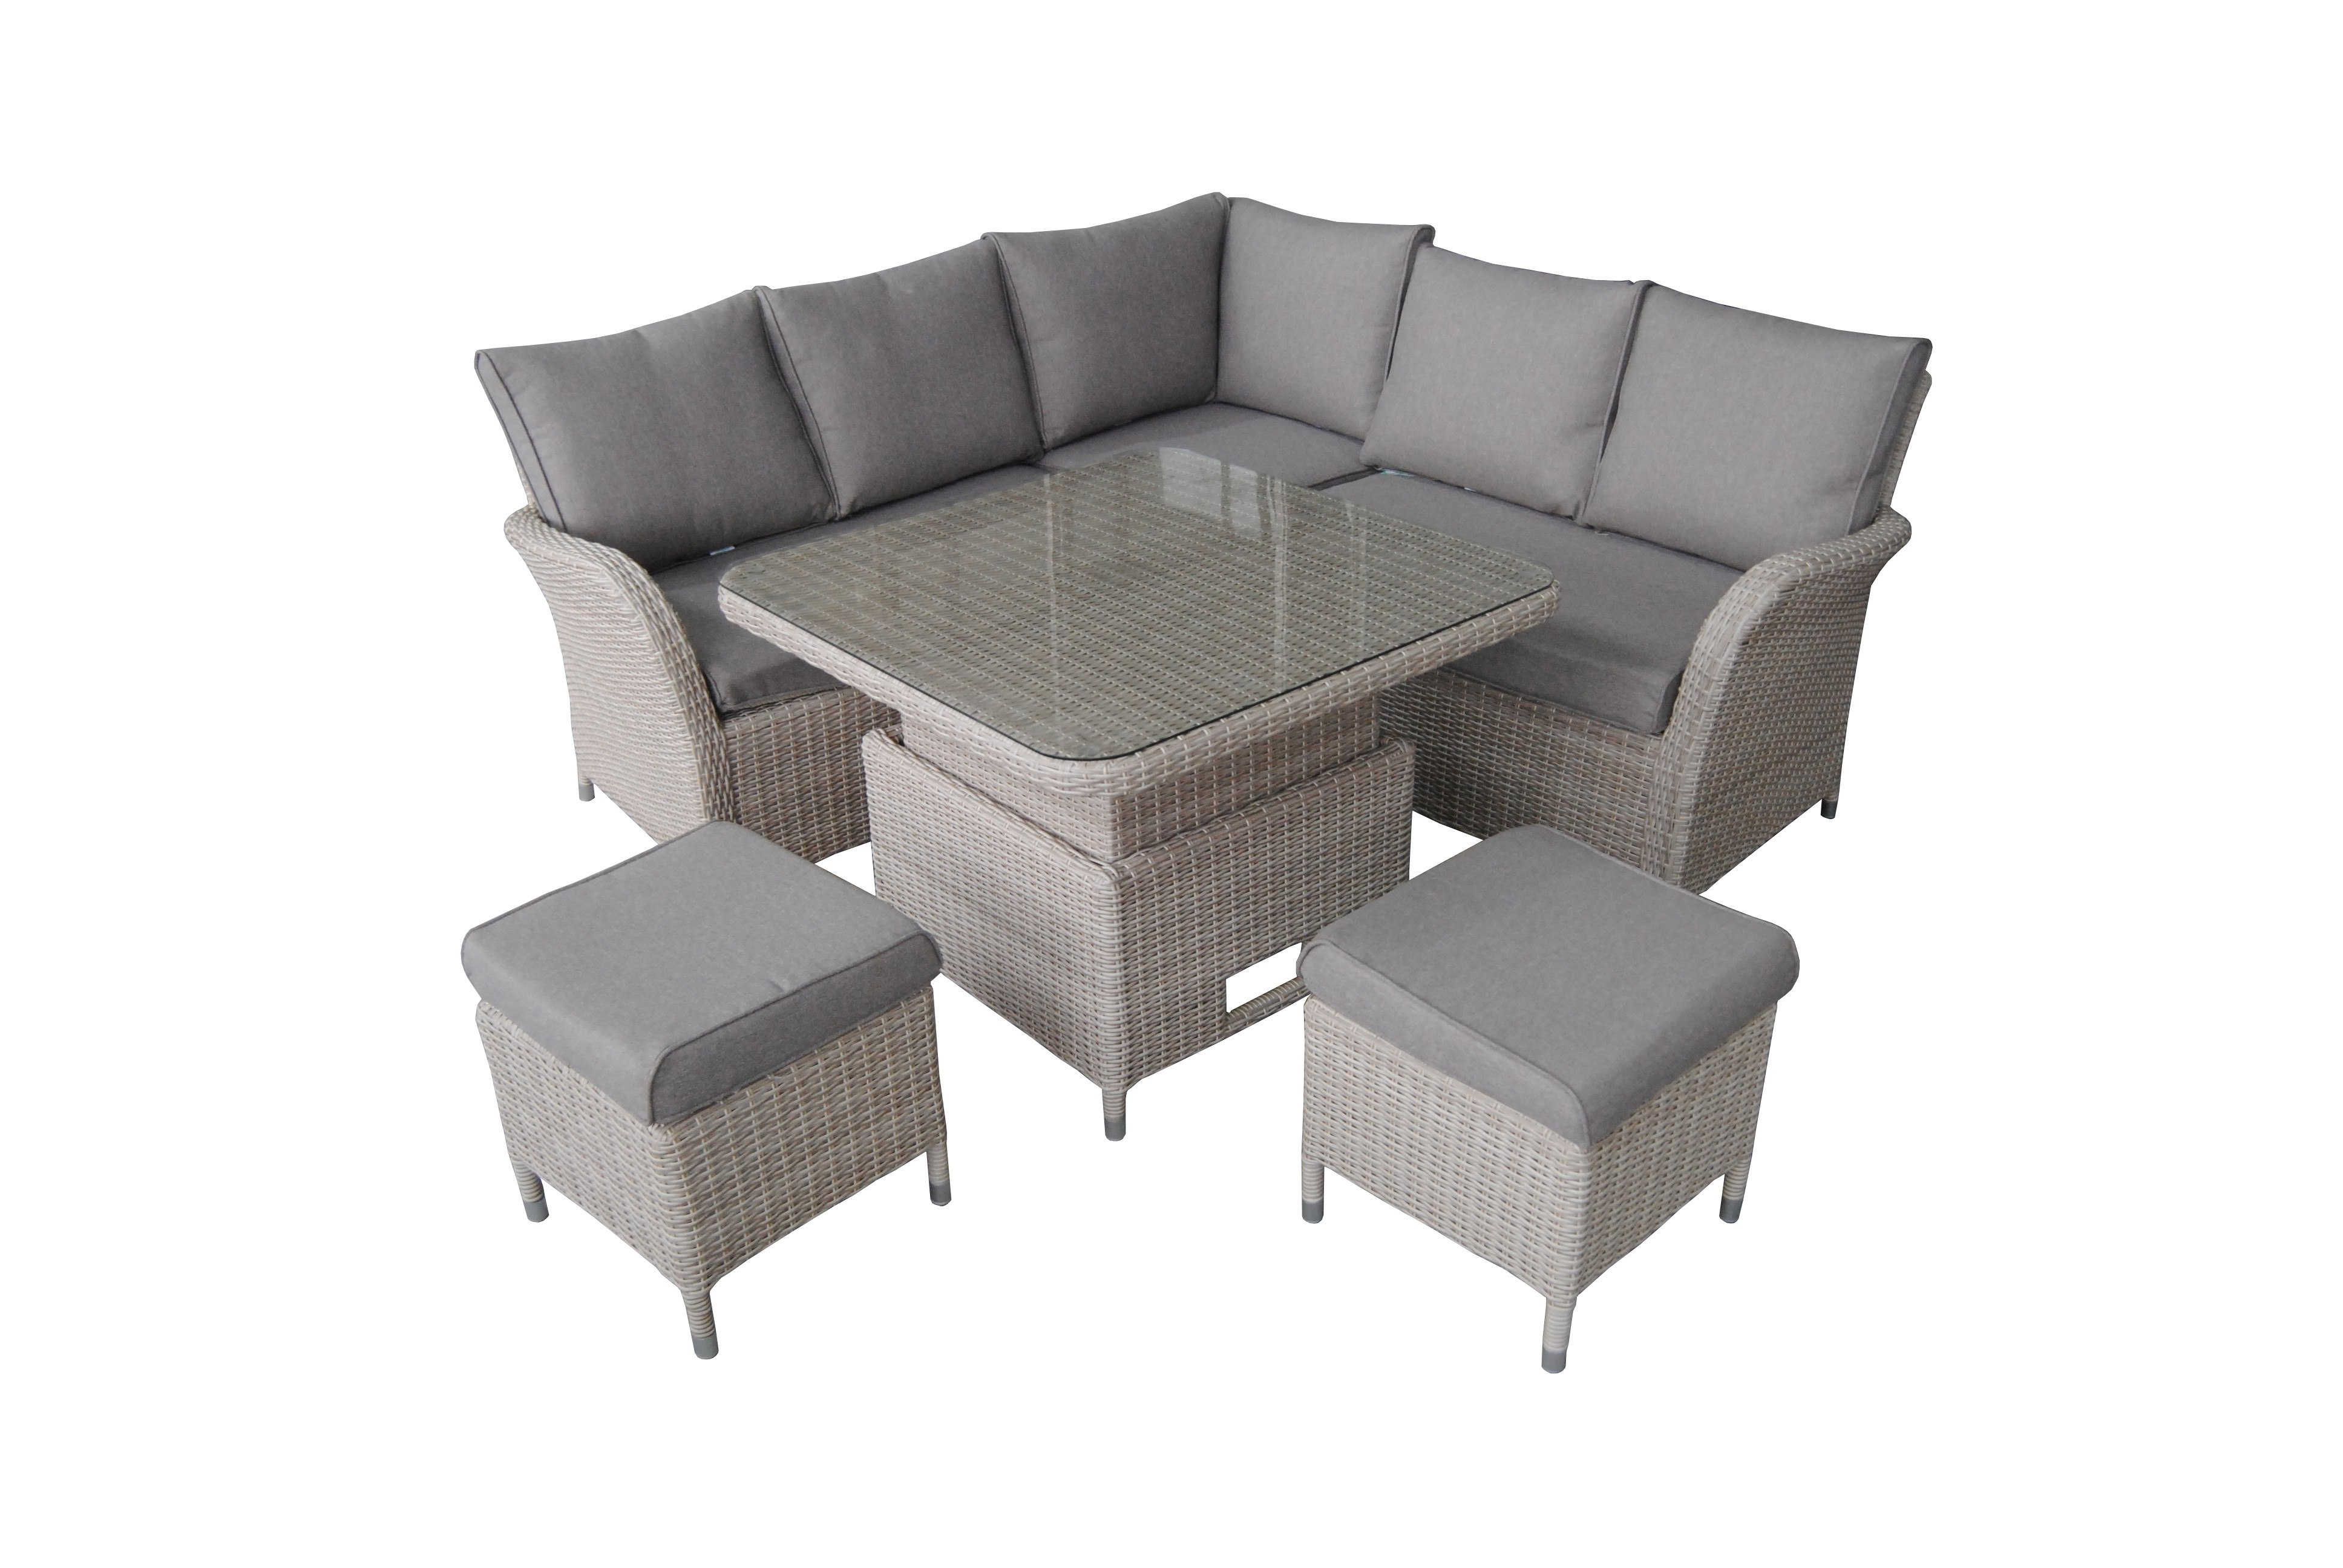 Lg Outdoor Monaco Compact Dining Modular With Adjustable Table (View 7 of 25)